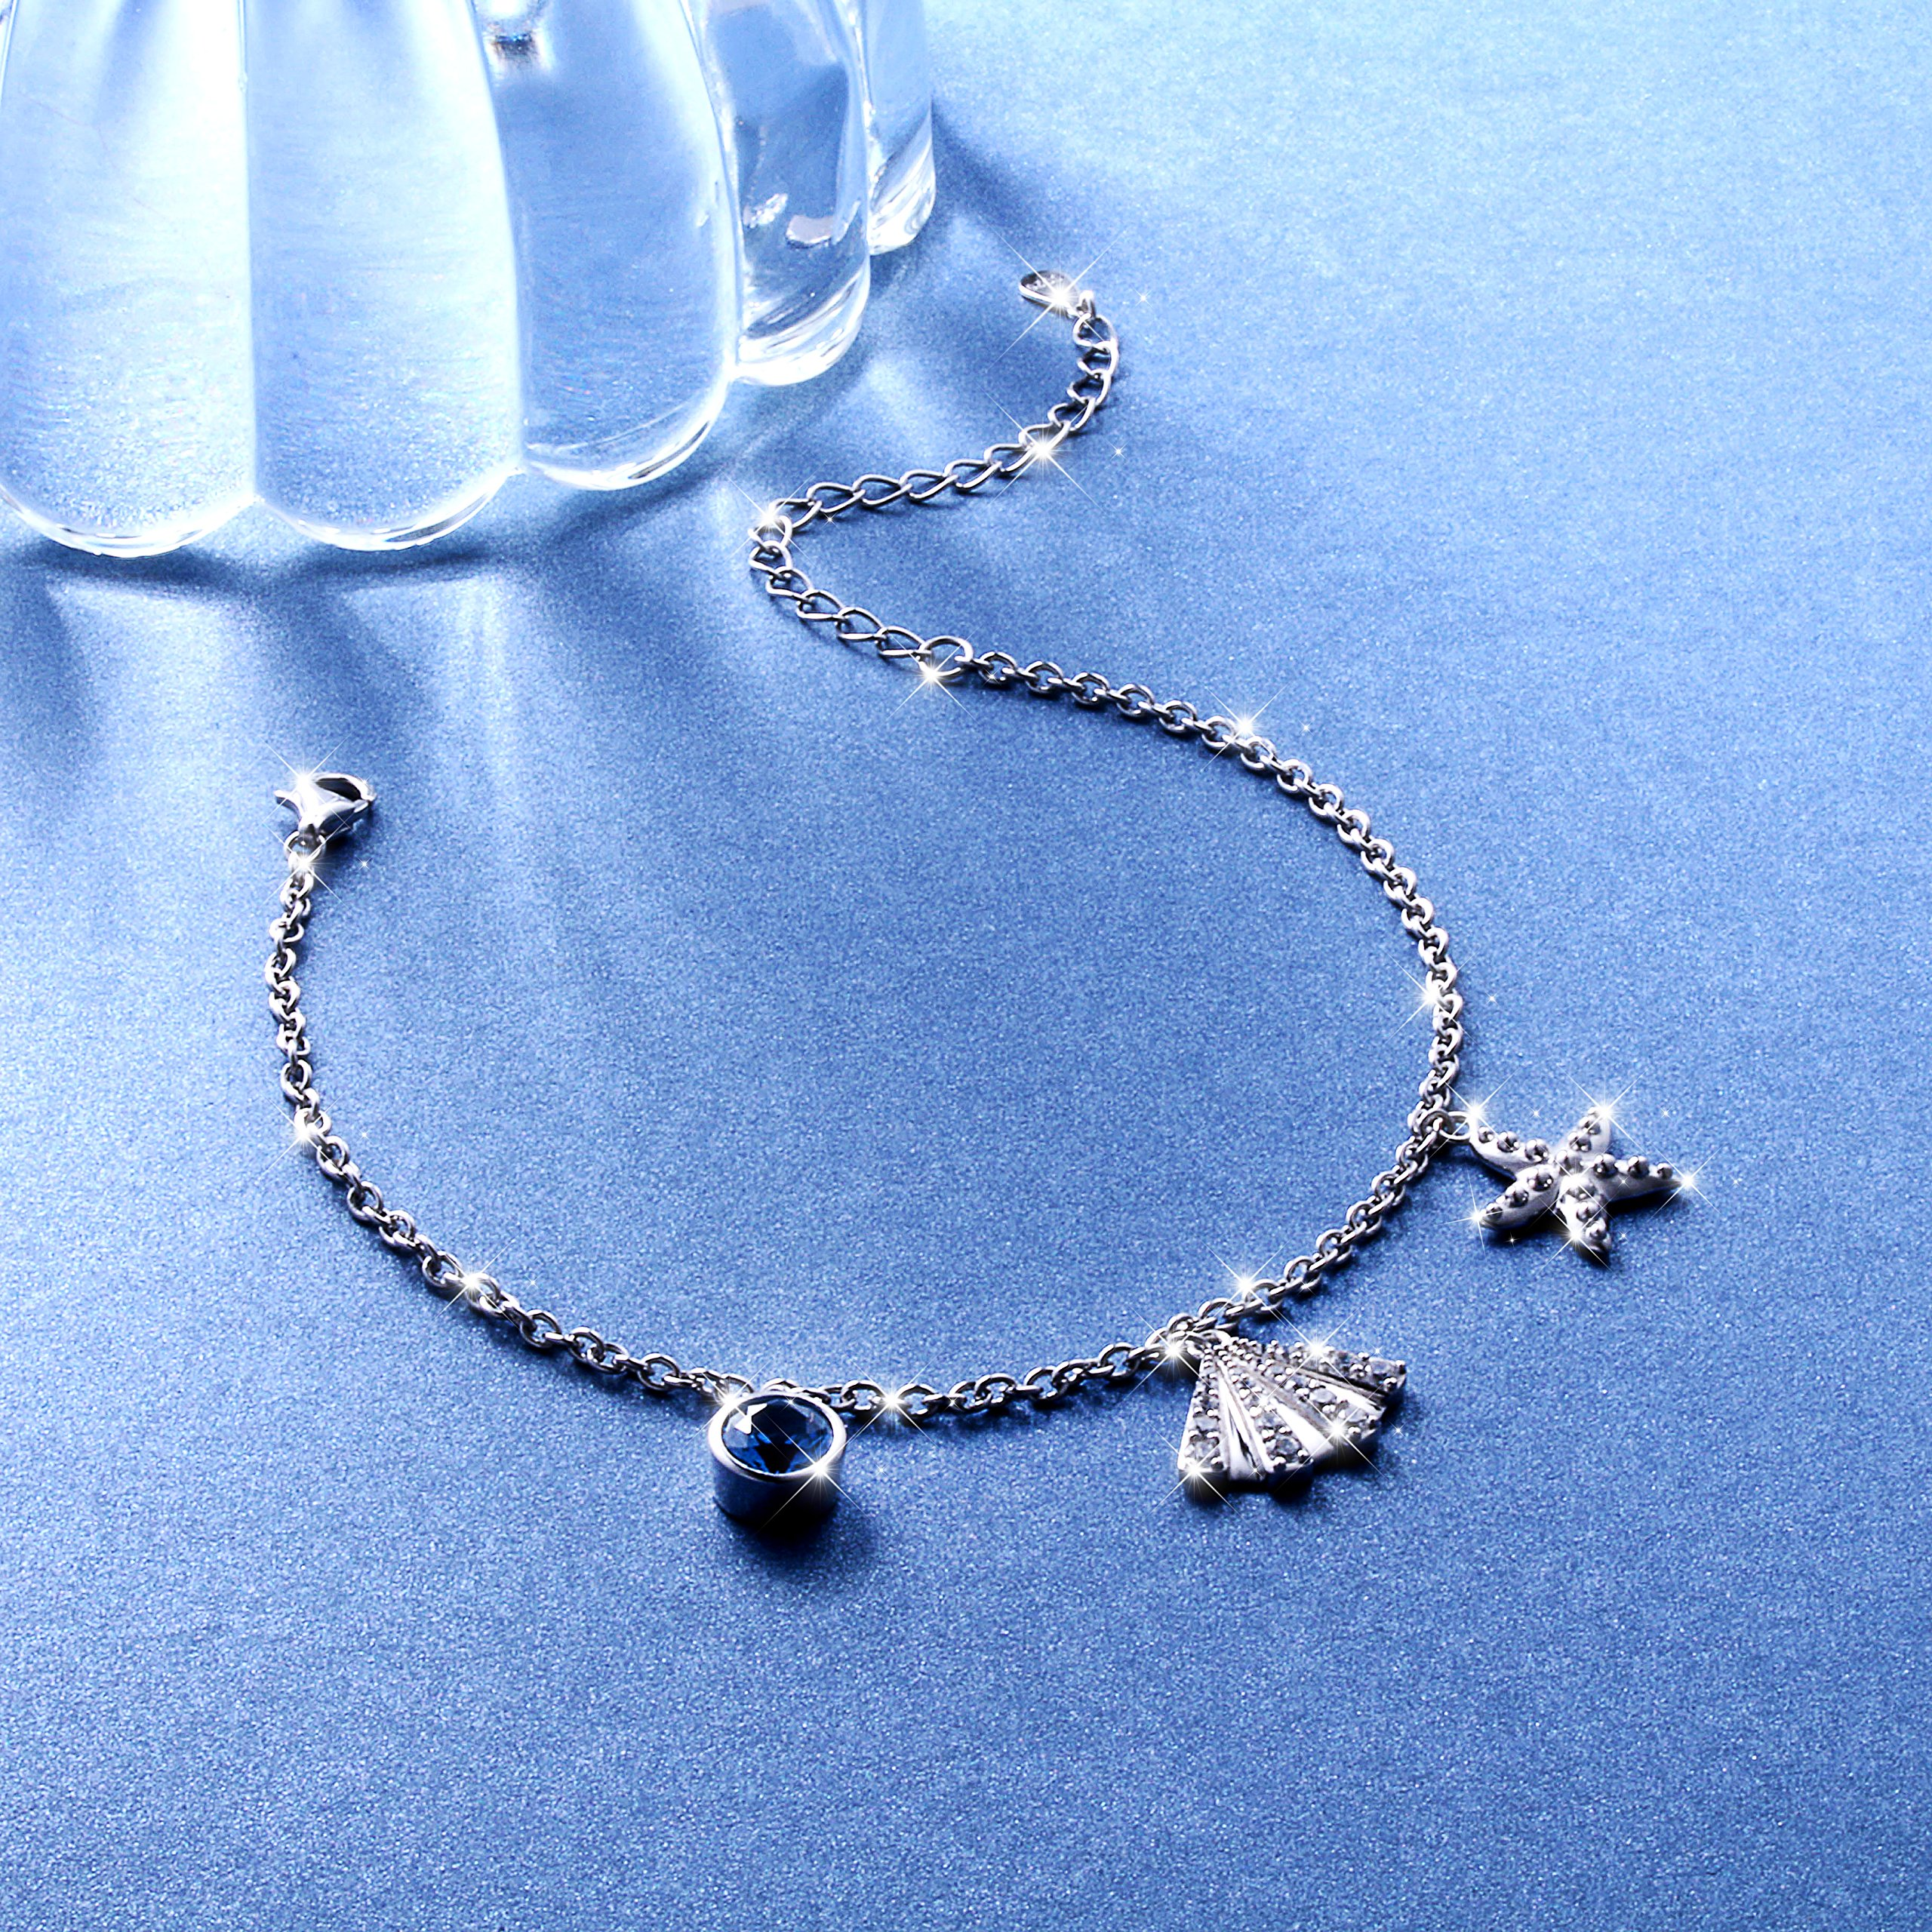 SILVER MOUNTAIN S925 Sterling Silver Starfish and Seashell Summer Adjustable Bracelet by SILVER MOUNTAIN (Image #3)